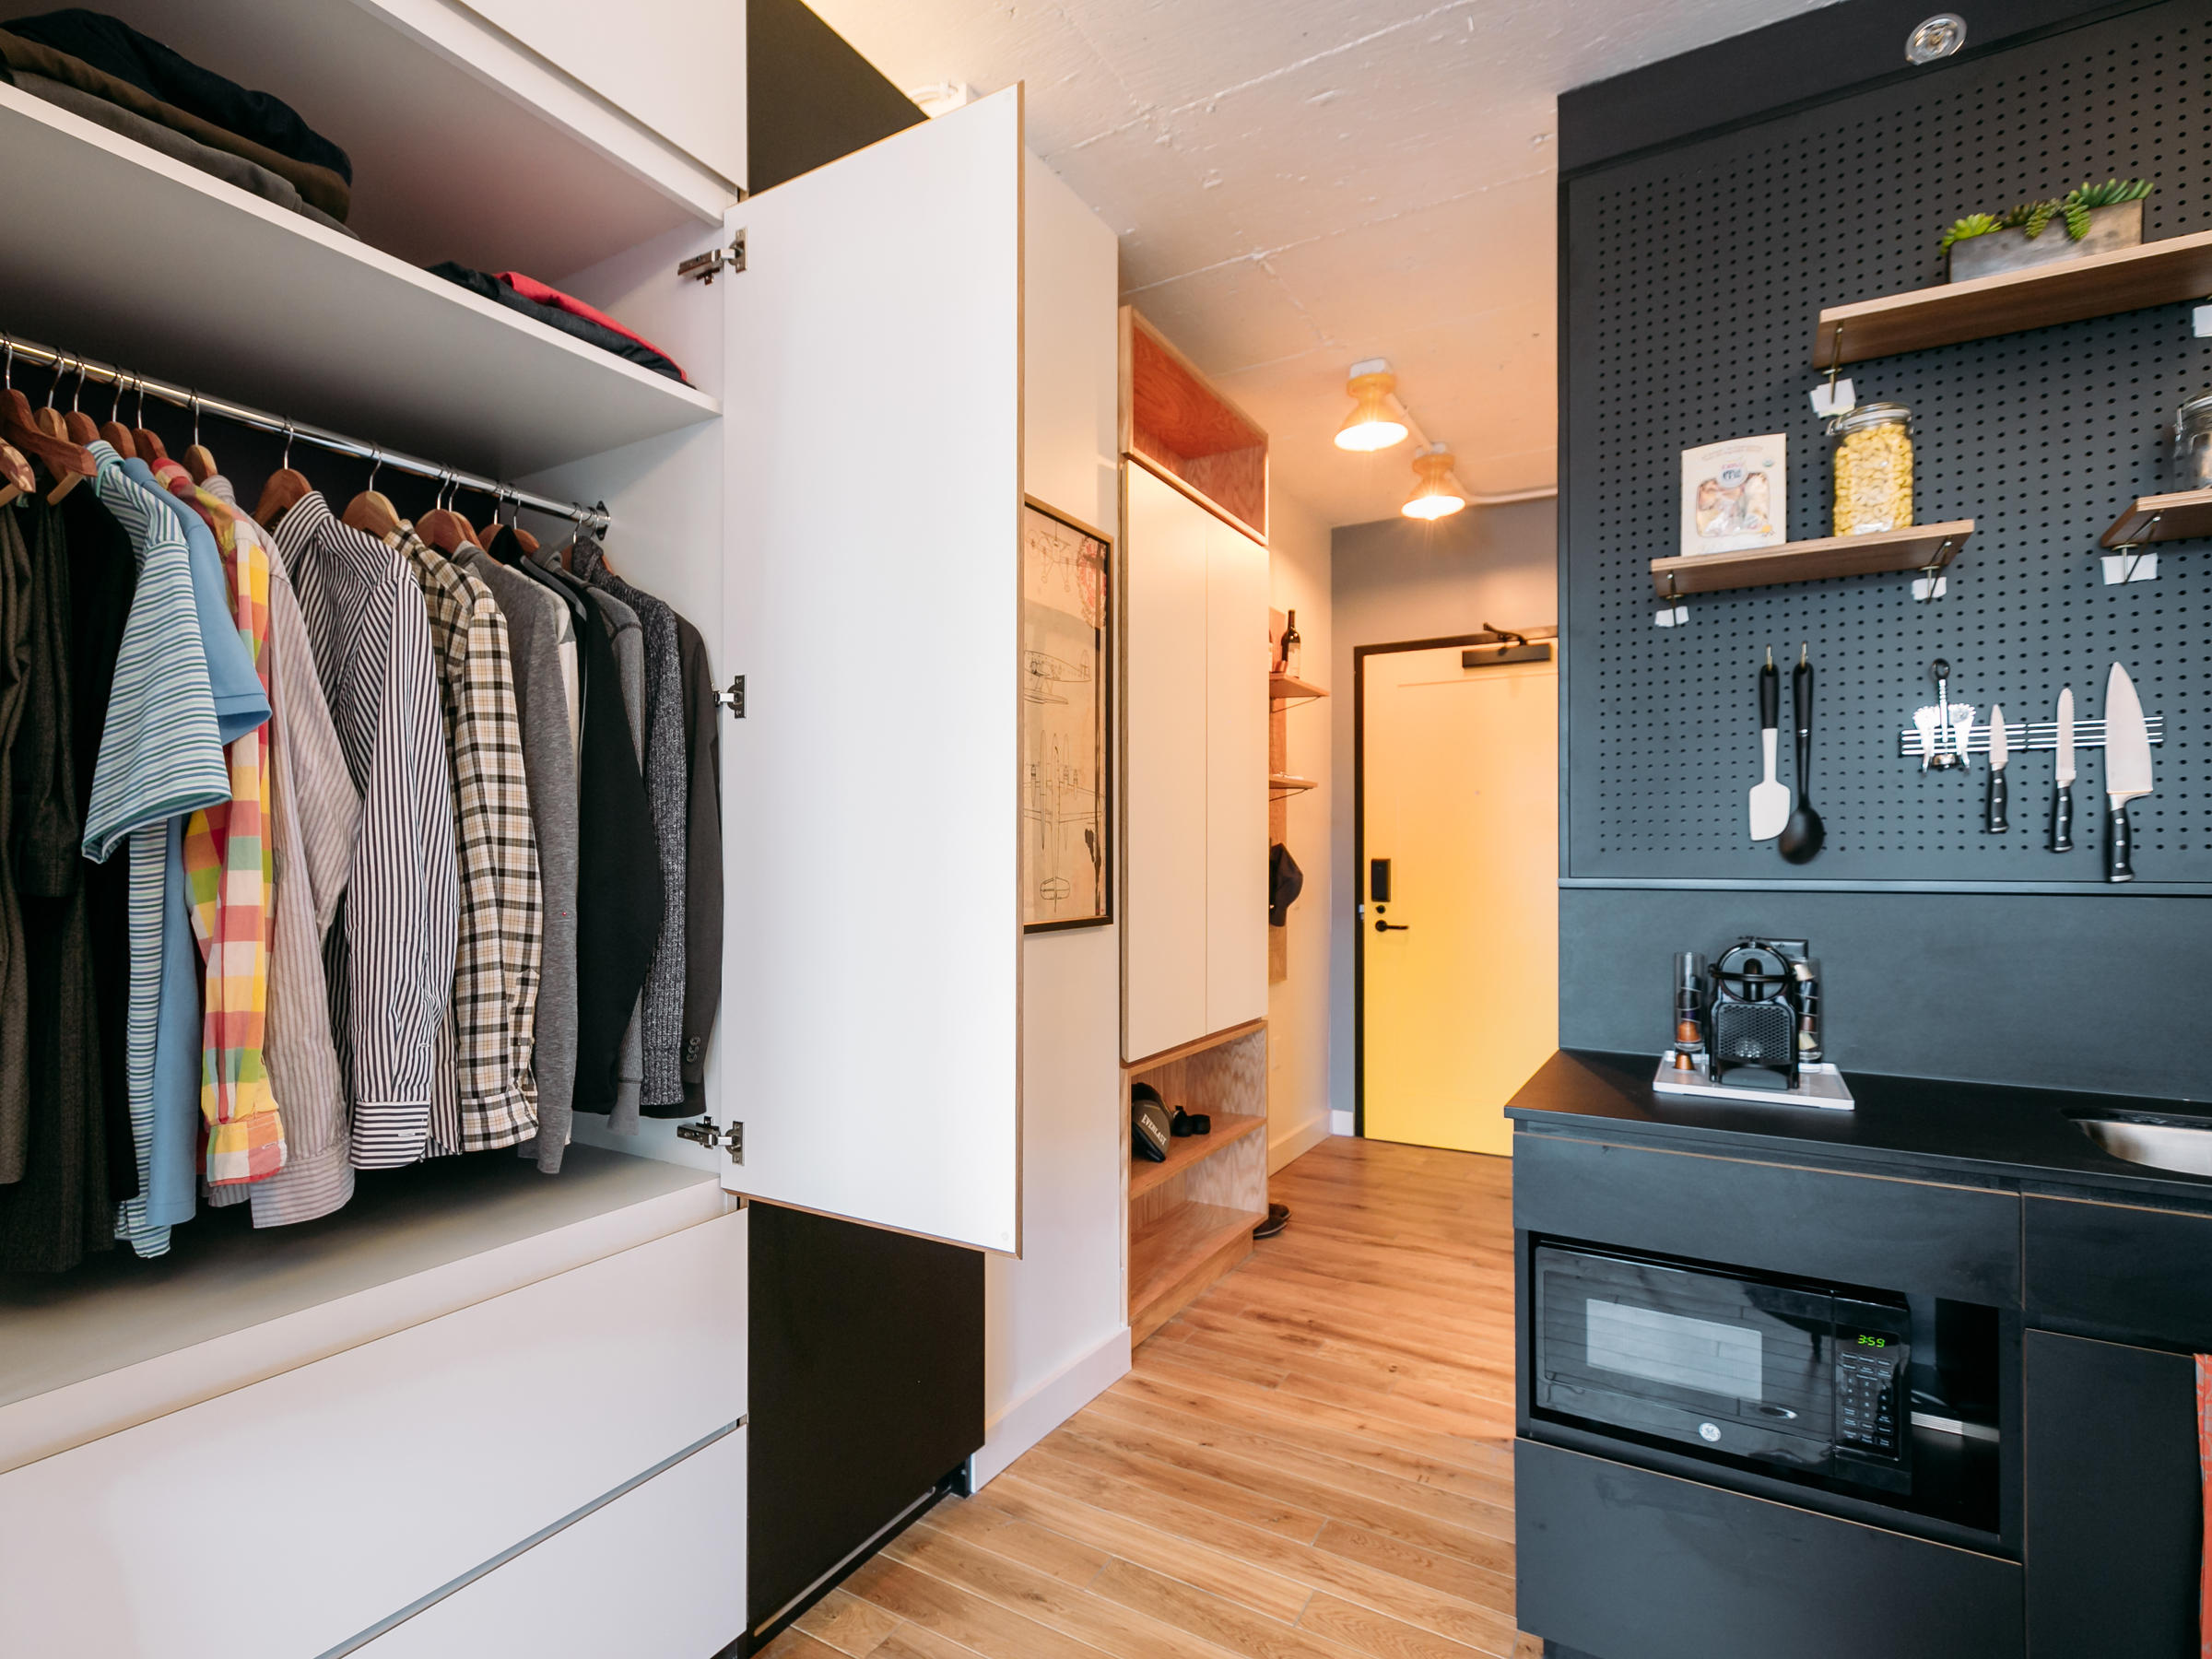 They're Small, But These Big-City Apartments Tout Their ...